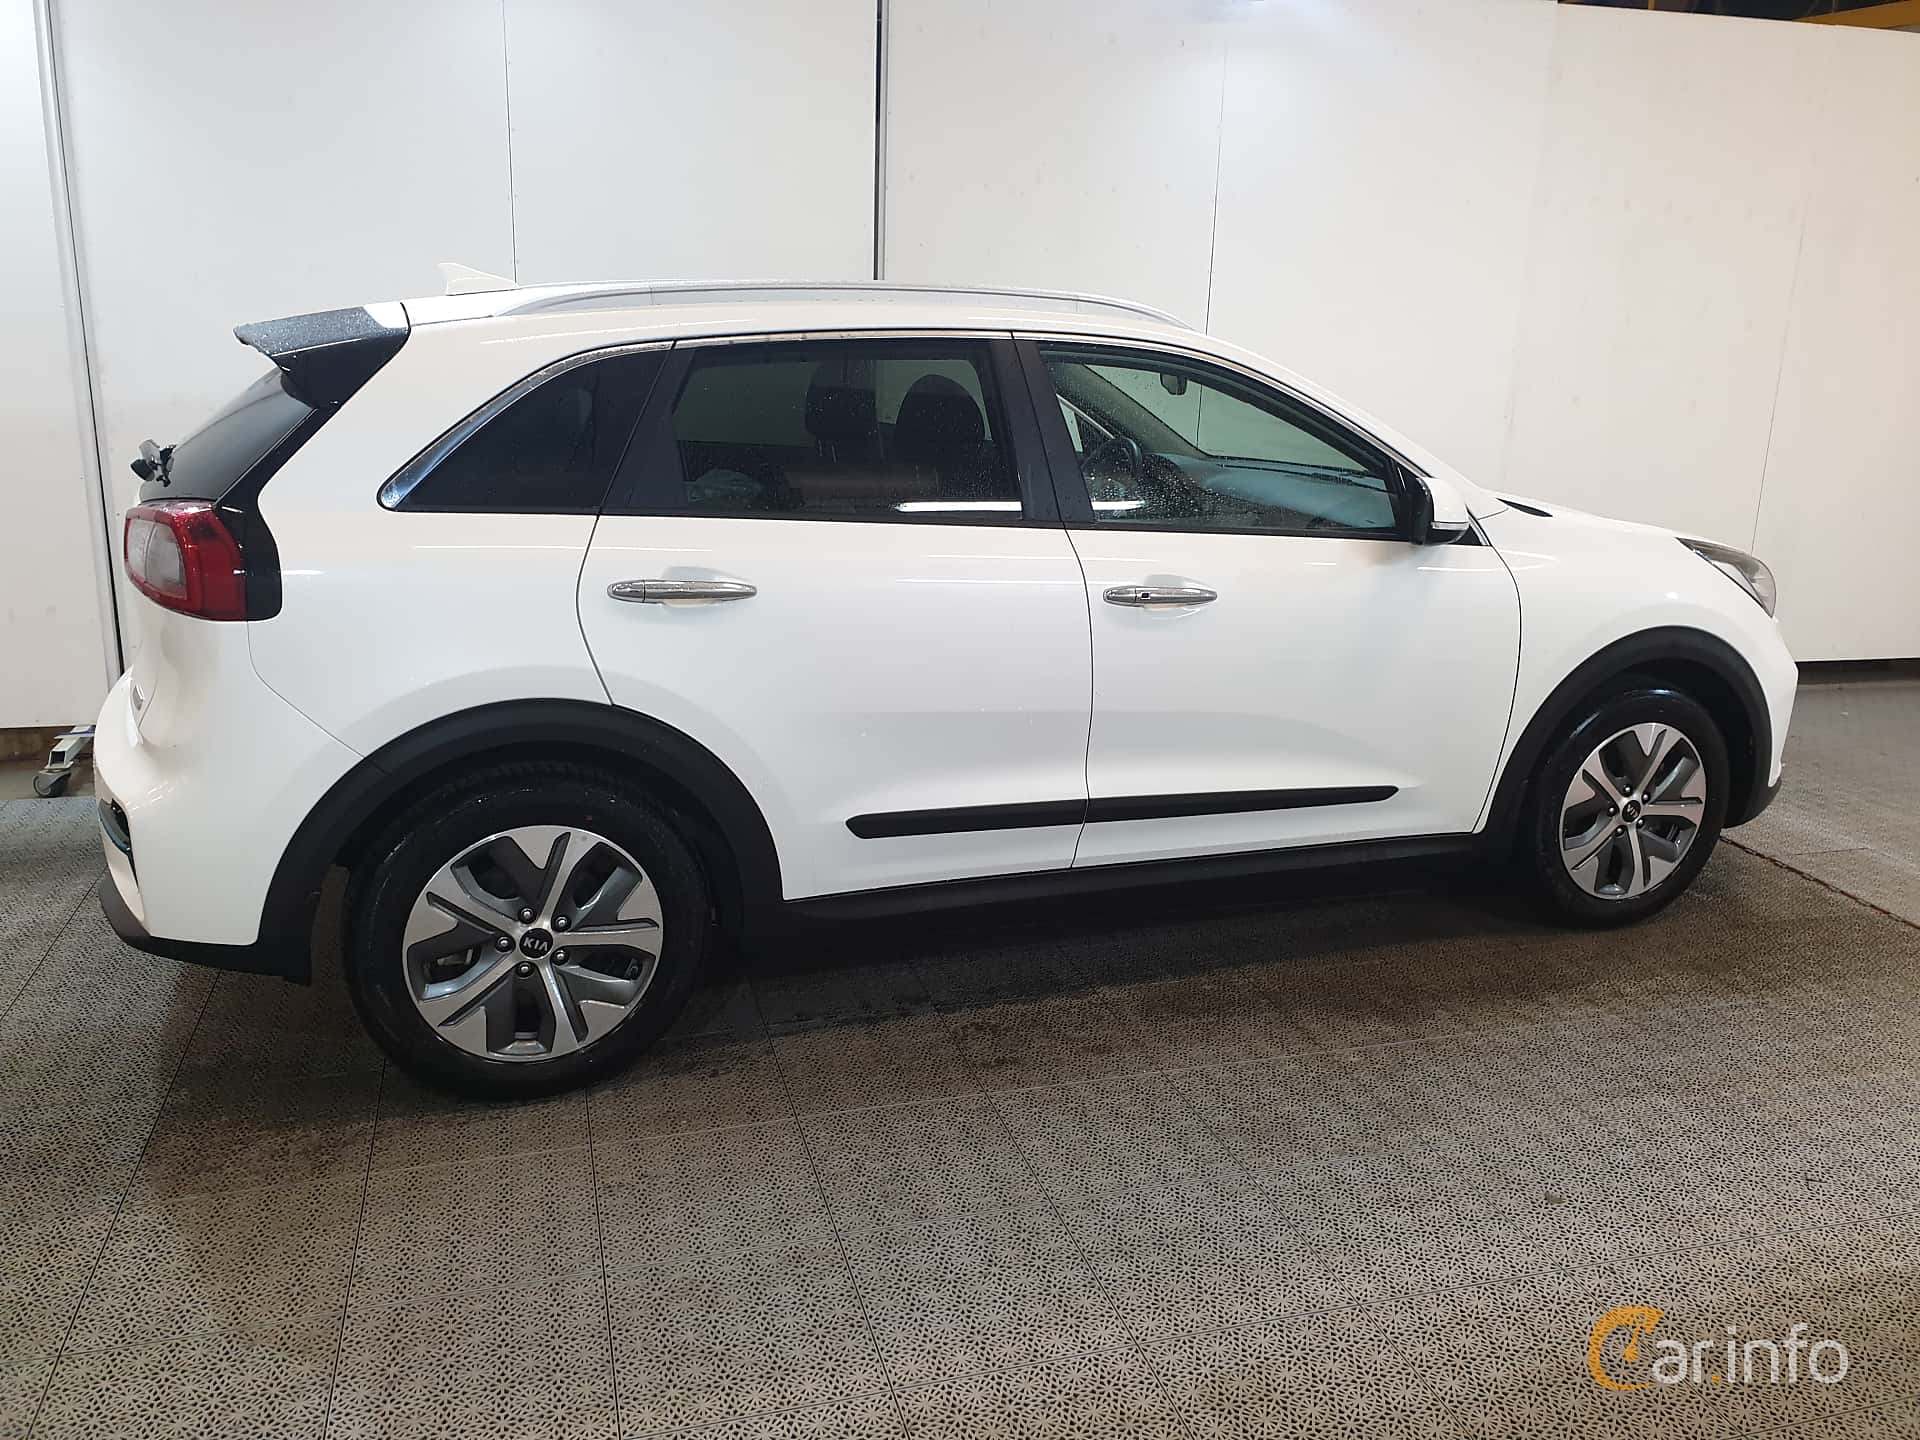 Kia e-Niro 64 kWh Single Speed, 204hp, 2019